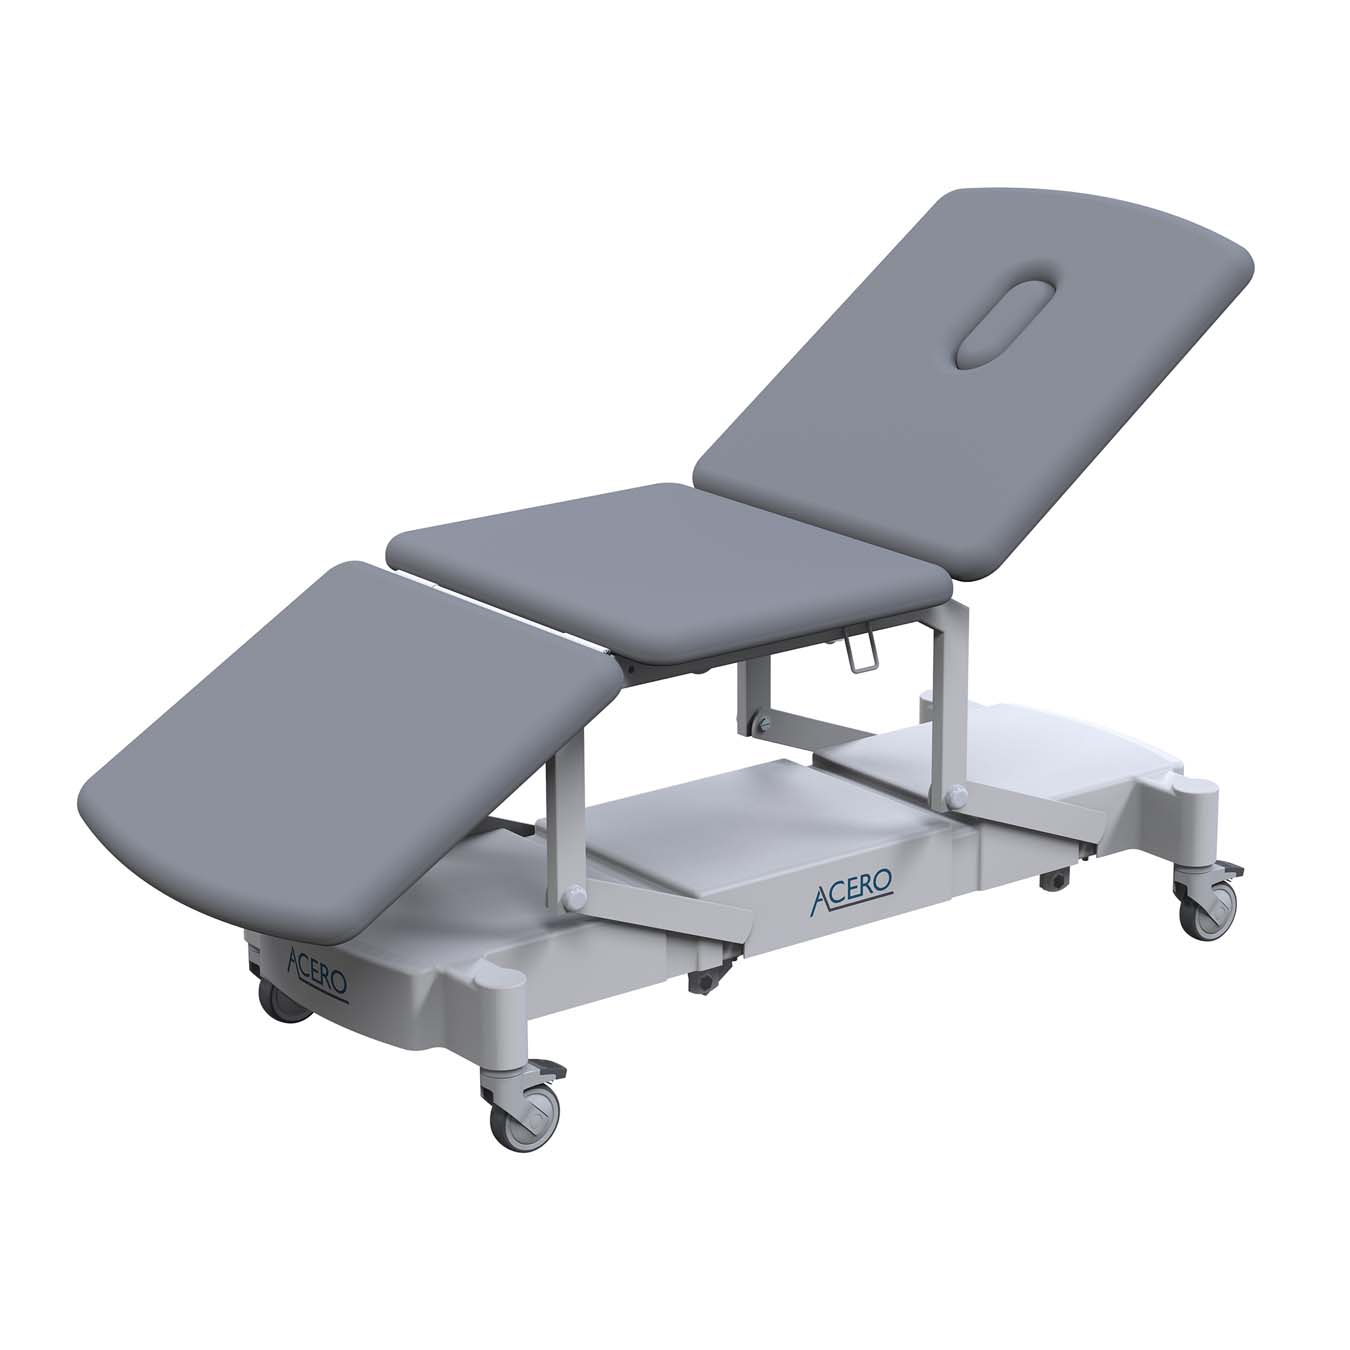 Treatment Couches Amp Chairs Delivery In Aust Medtek Com Au